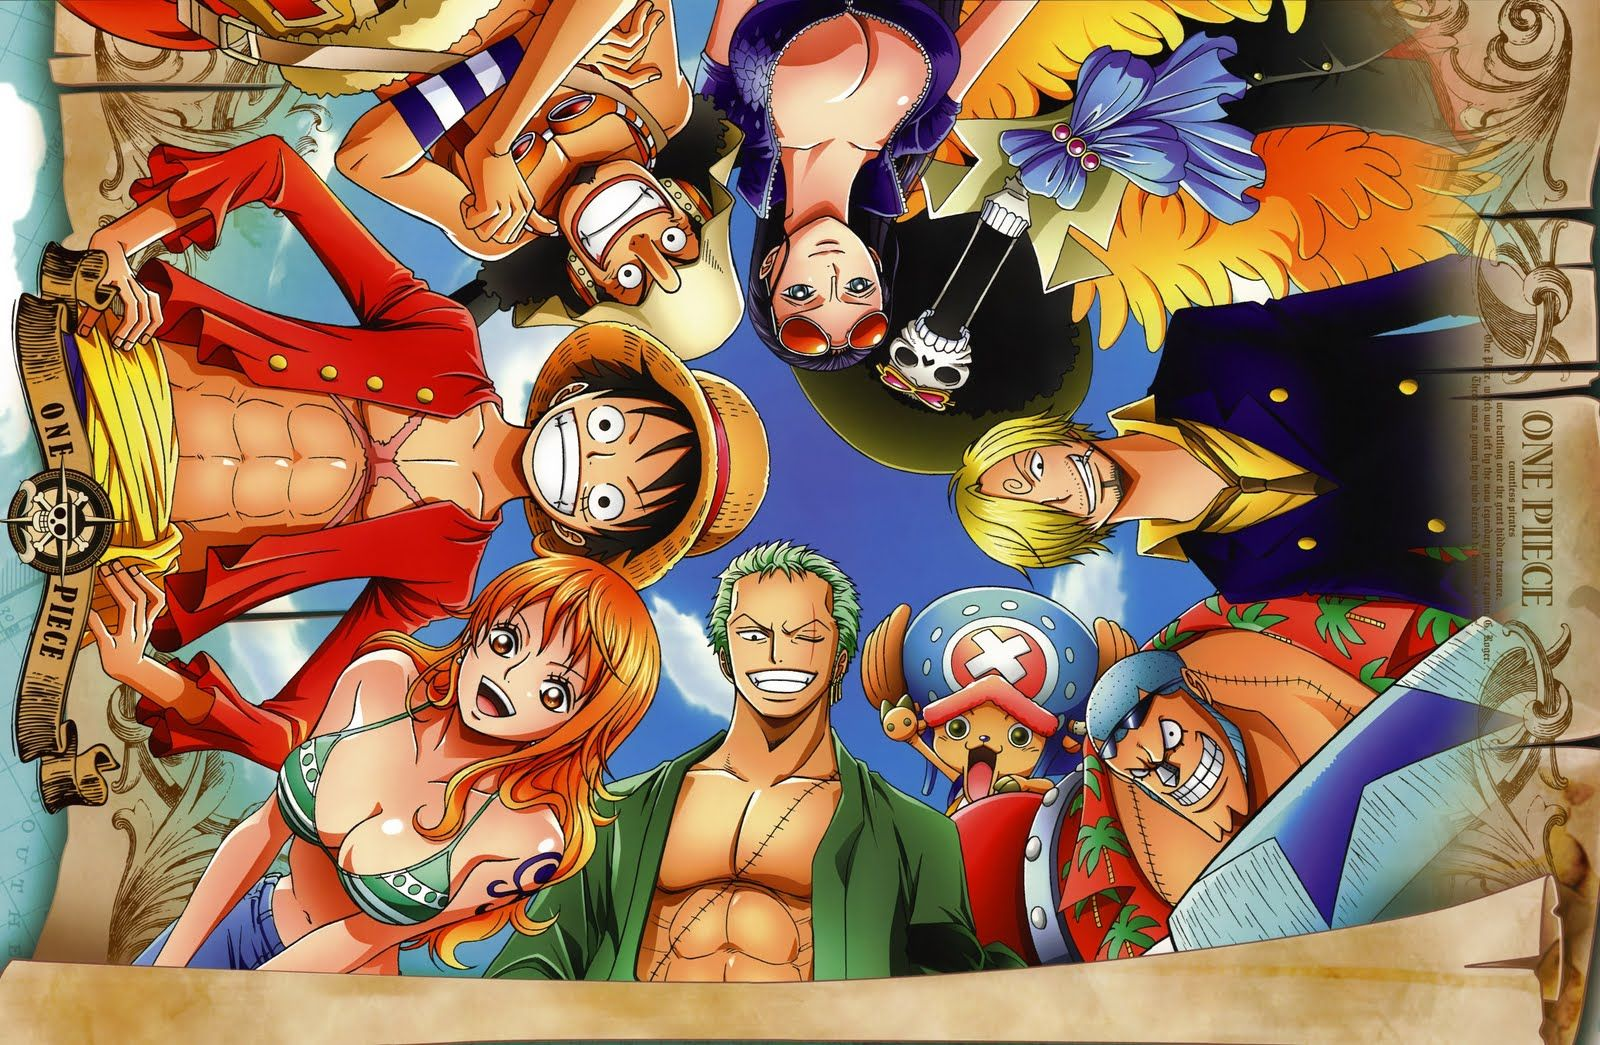 Wallpapers One Piece New World Hd One Piece Manga One Piece Pictures One Piece Crew